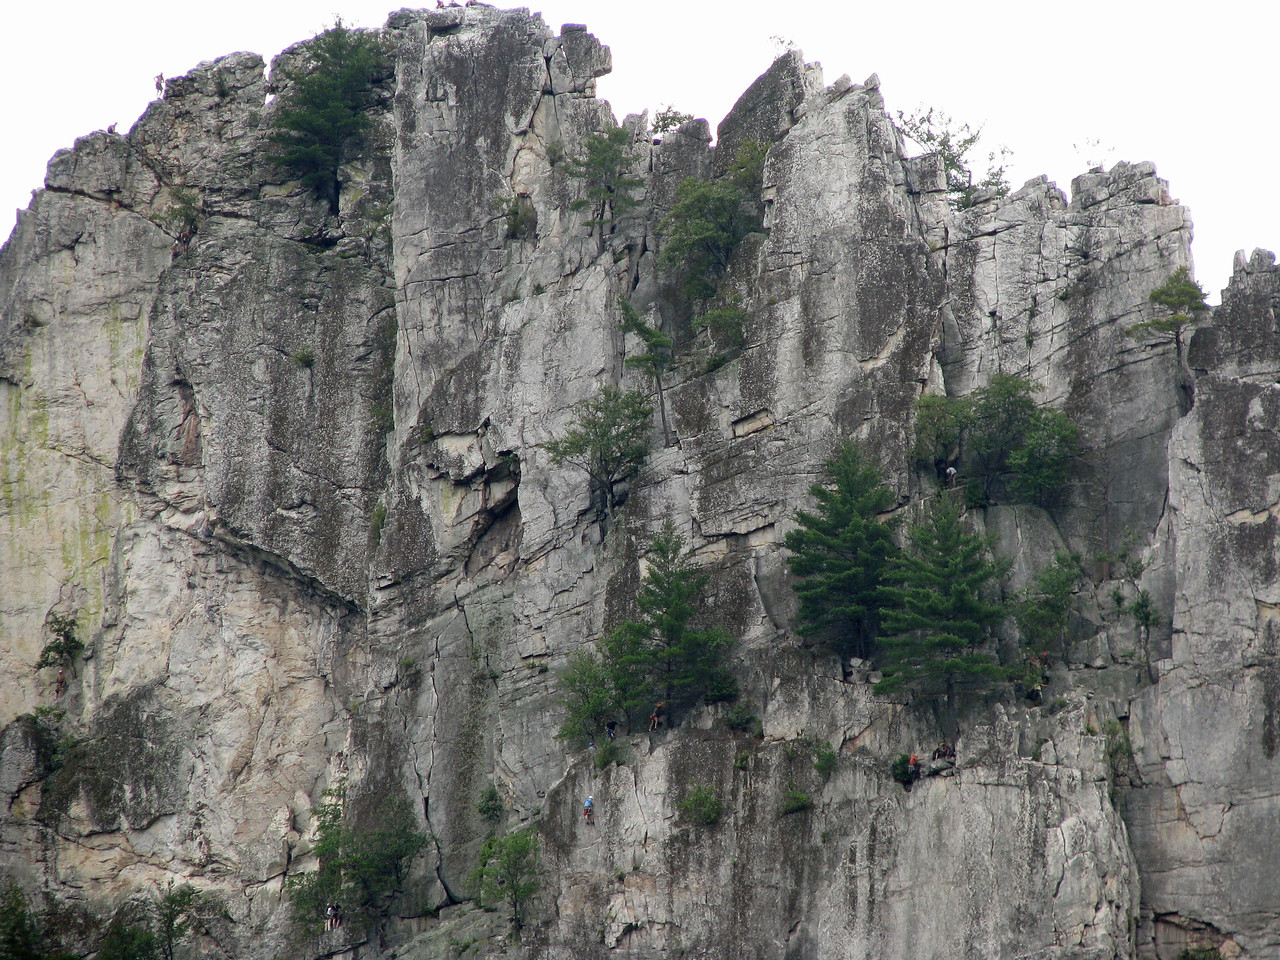 Seneca Rock complete with rock climbers if you can find them.